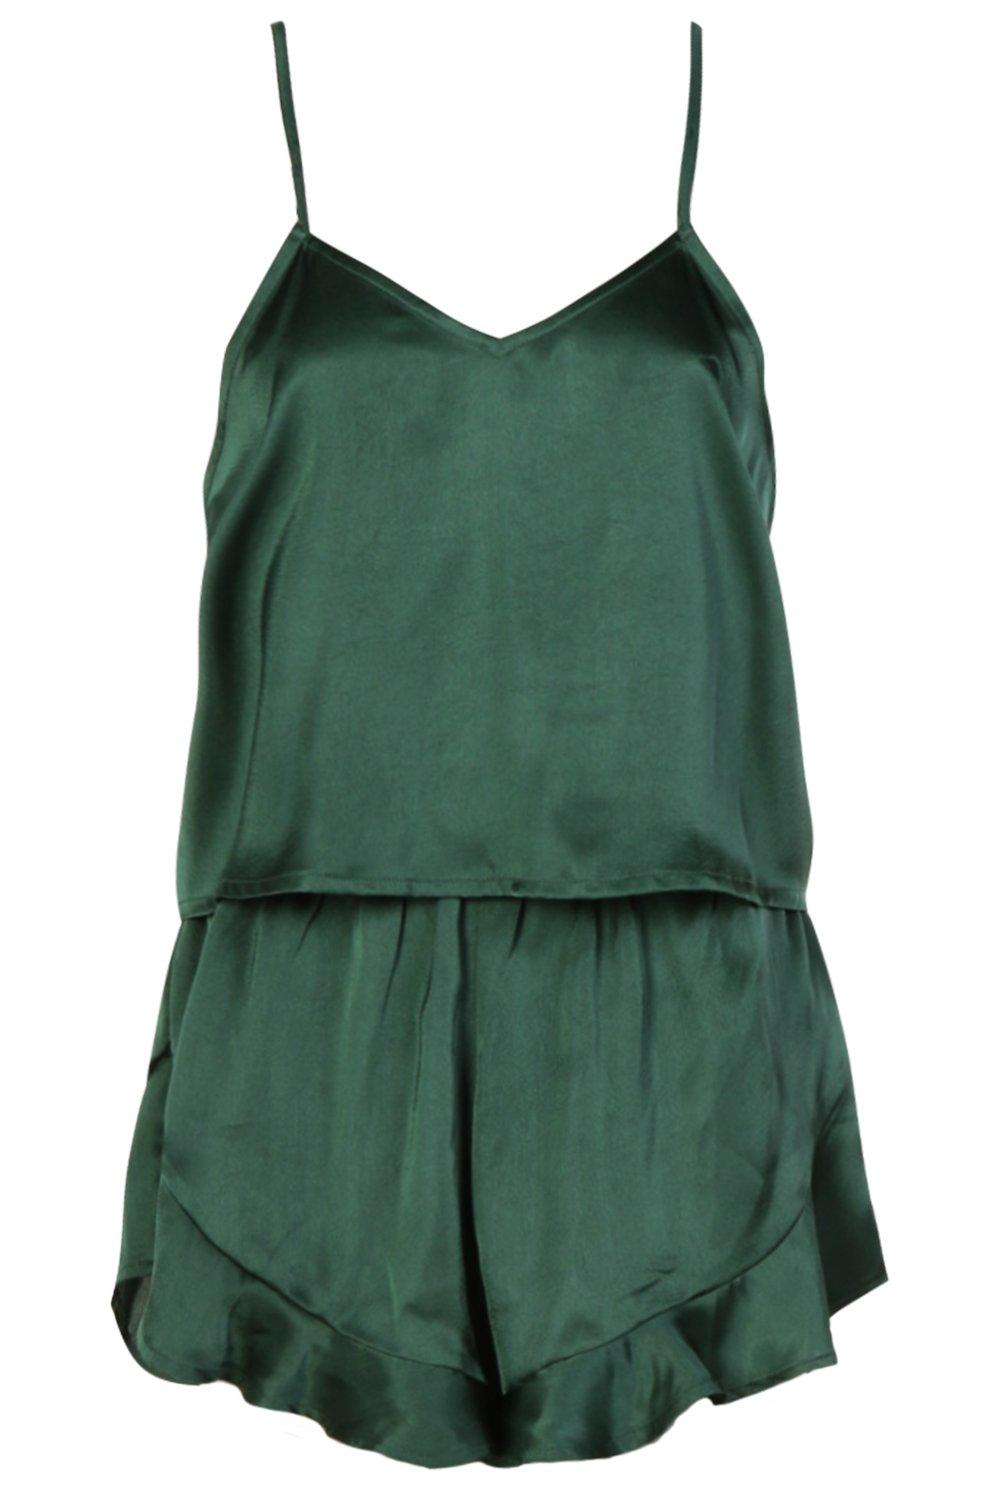 Satin Short Vest Set green dark amp; rBrwqdZxE